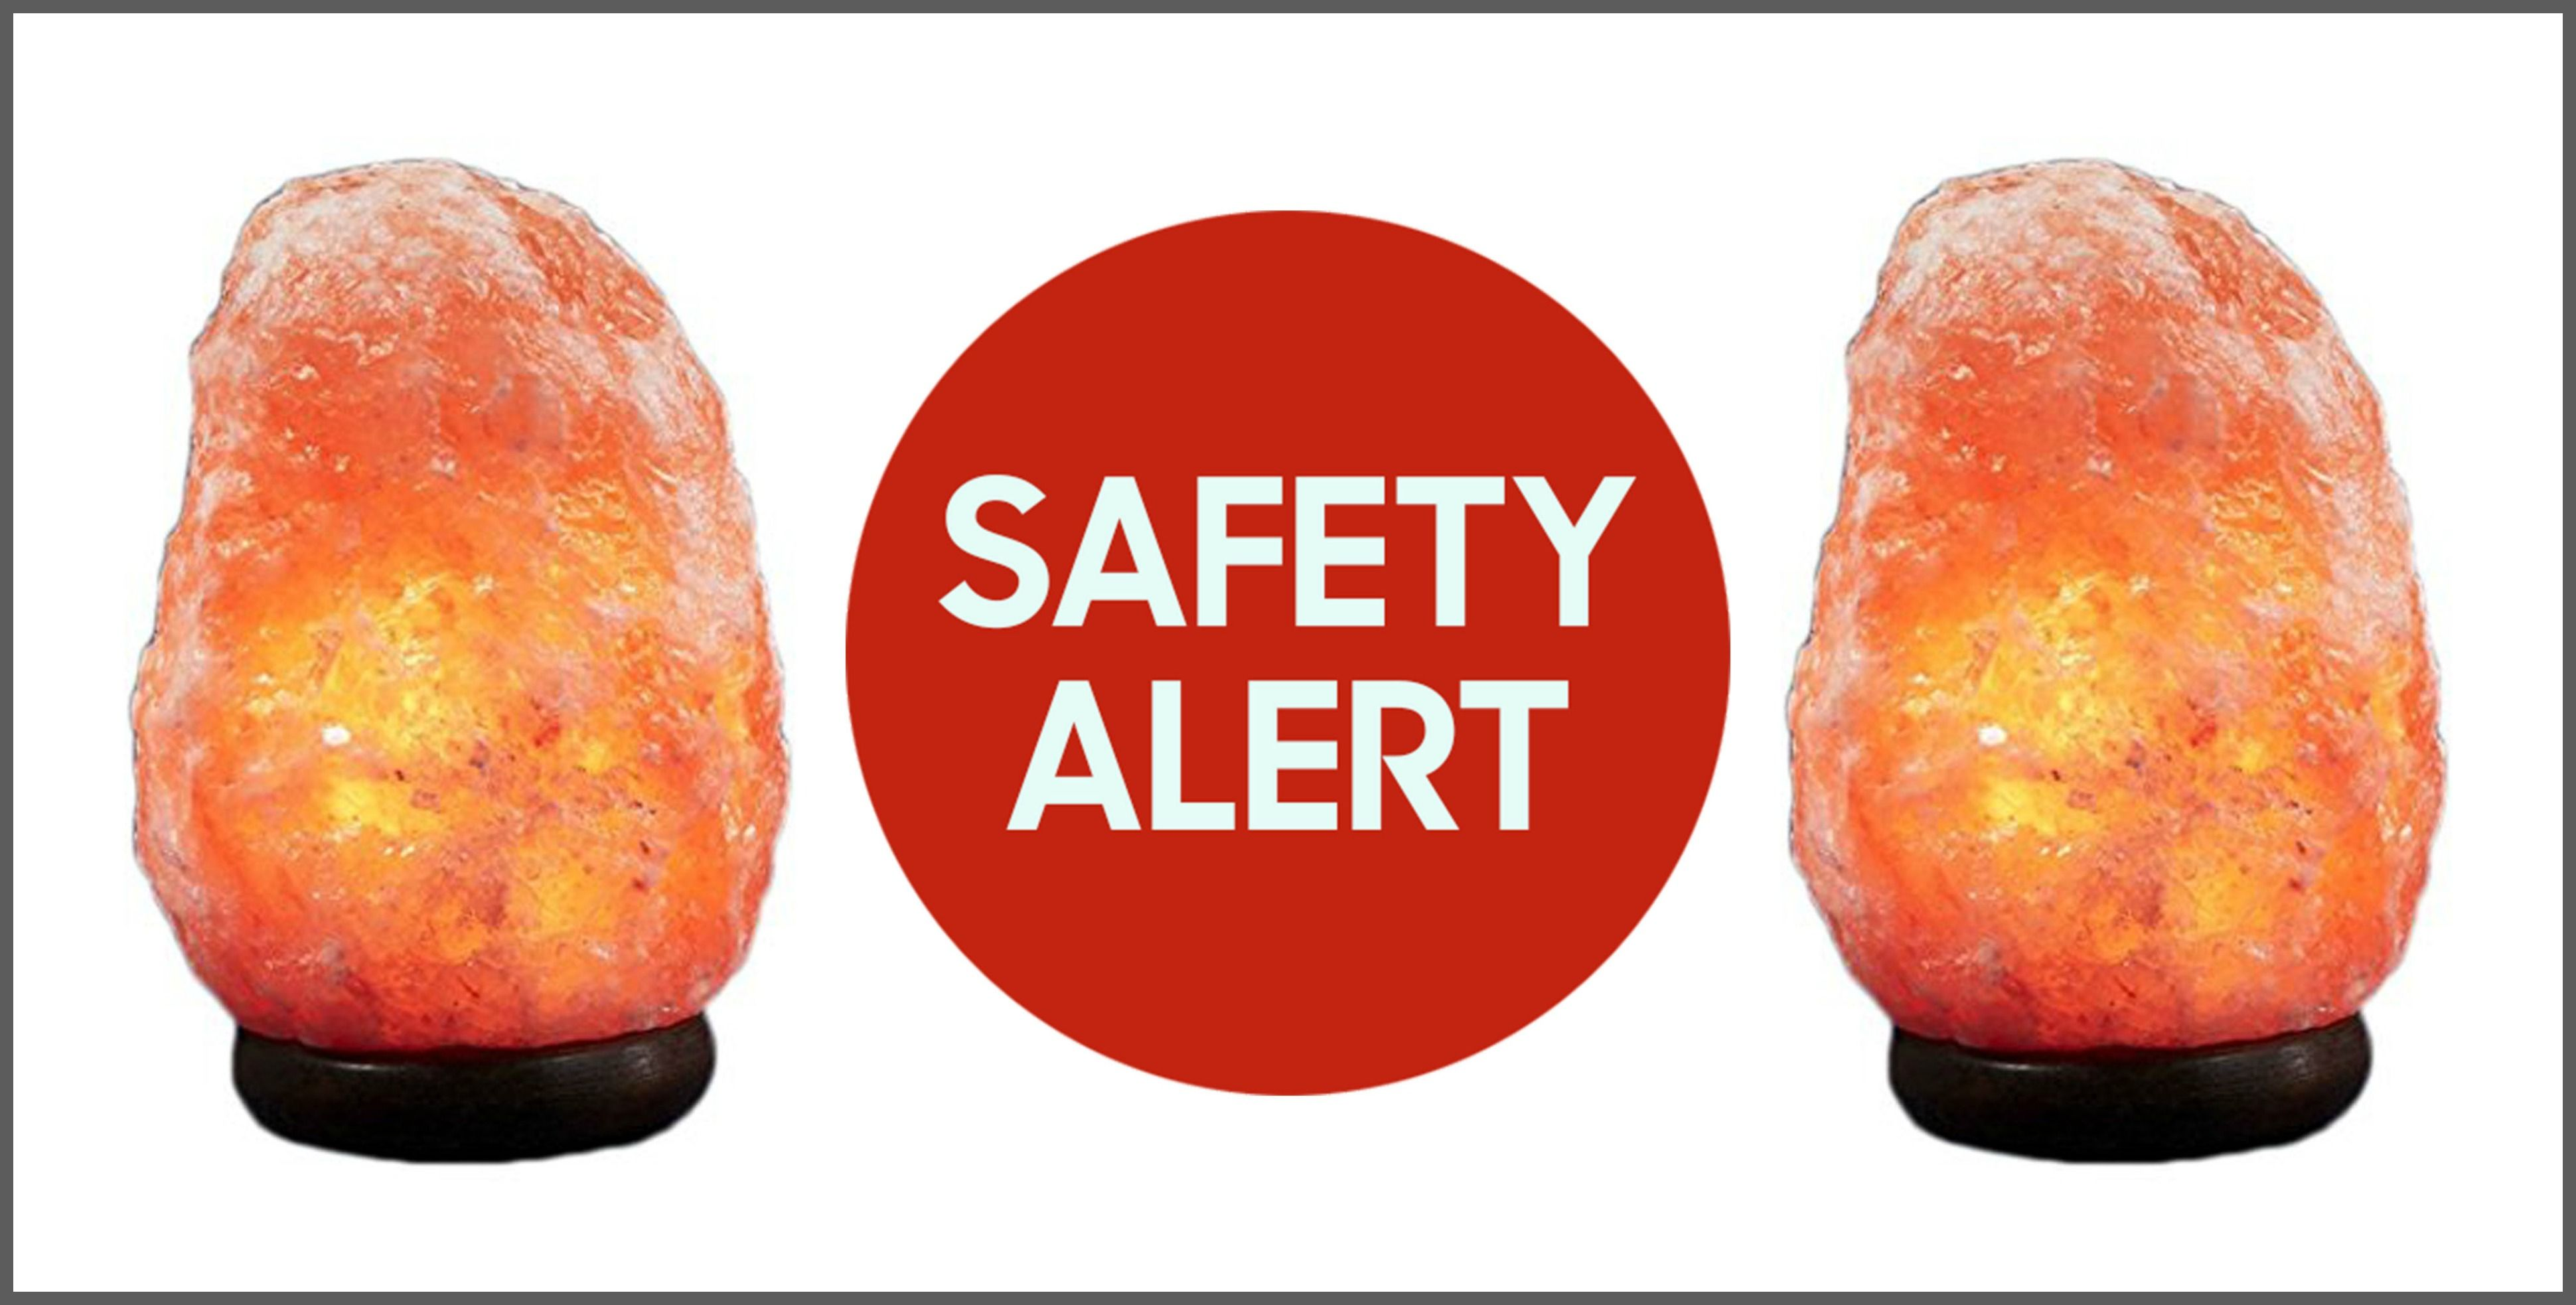 Himalayan Rock Salt Lamps Recalled Due to Fire Risk - Dangers of